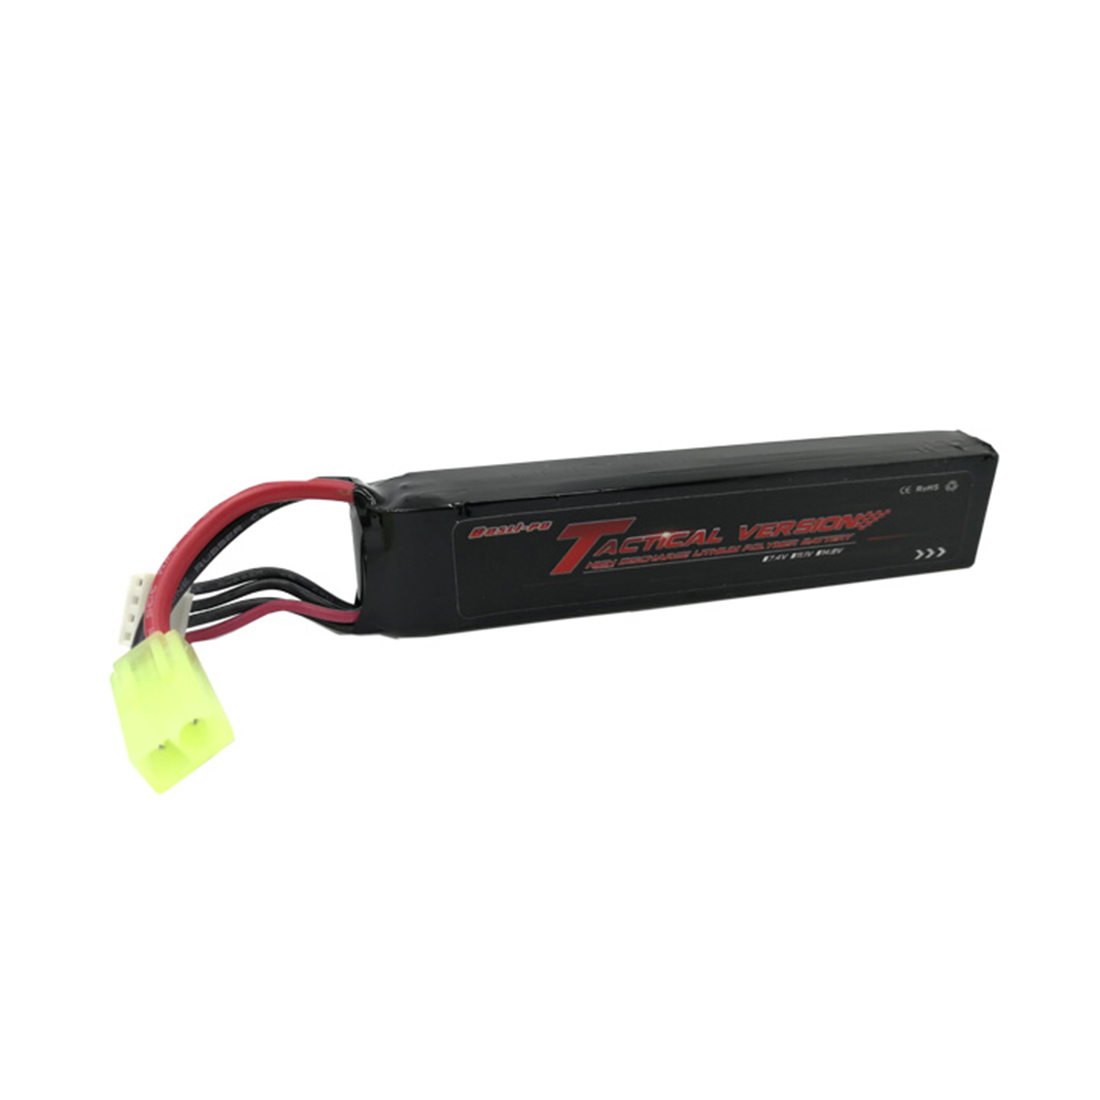 Bopslipo 11.1V 1200mah High Power Polymer Lithium Battery for LDT <font><b>416</b></font> Water Gel Beads Blaster with Tamiya Interface image